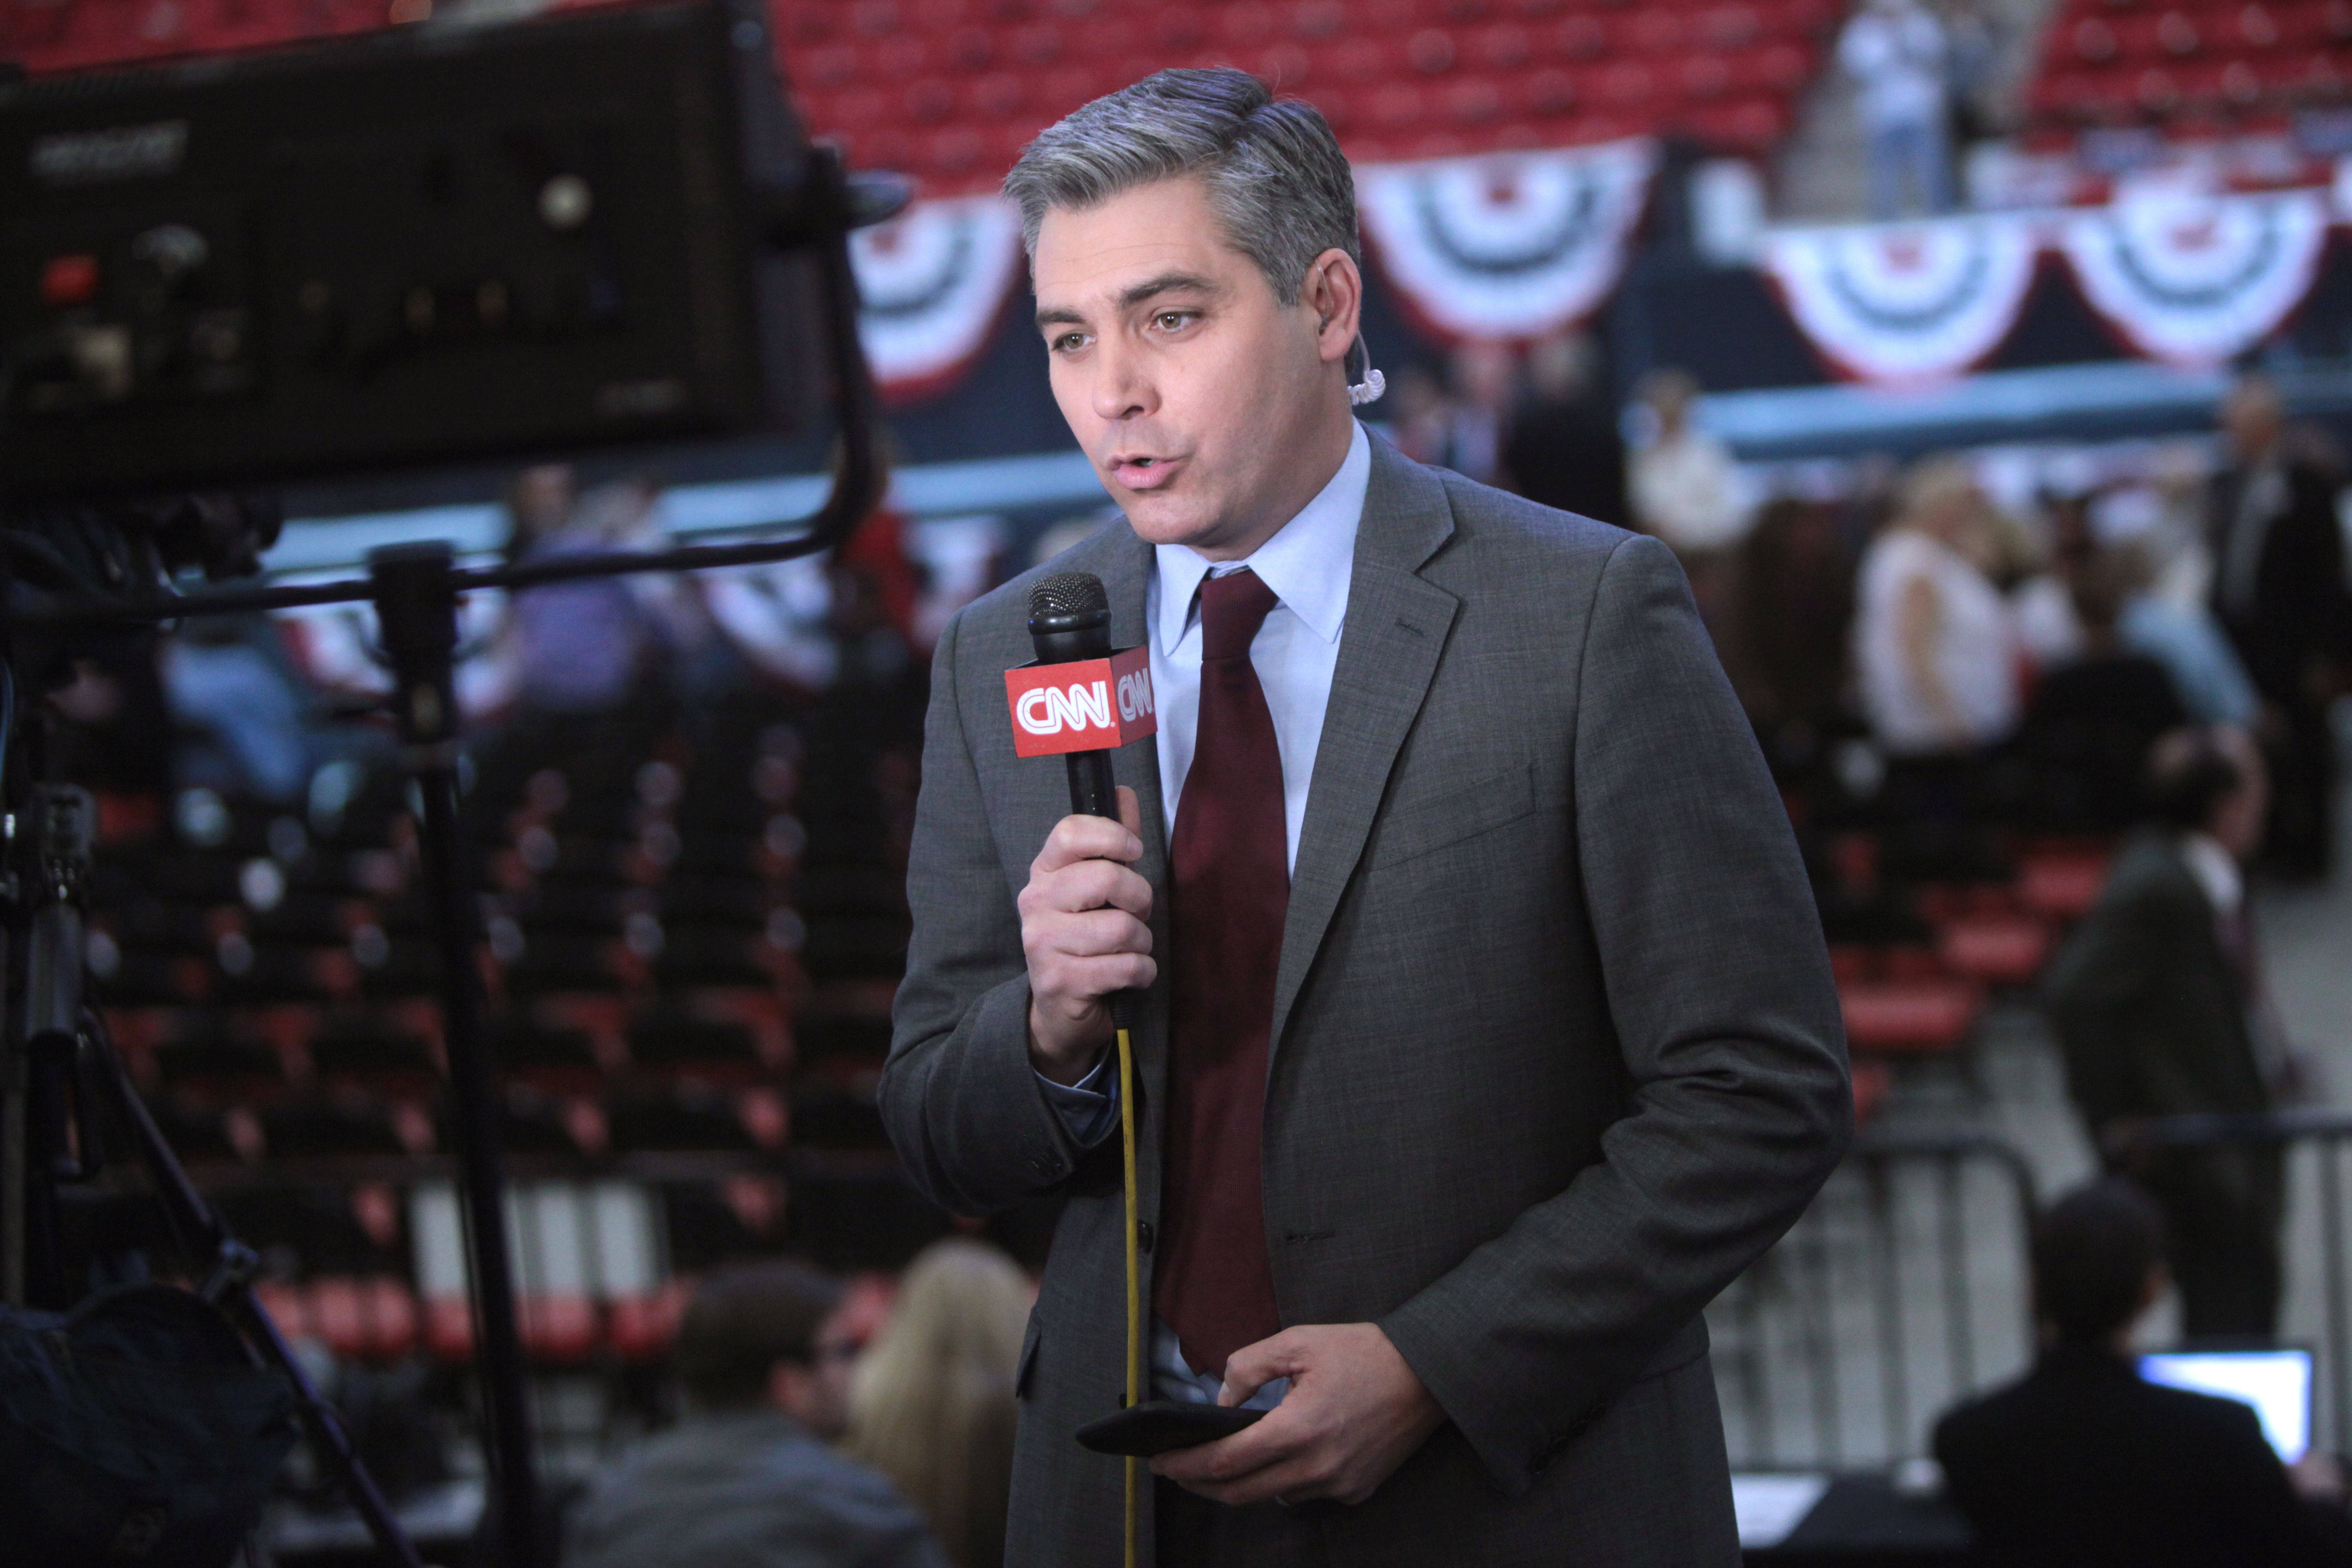 White House responds to CNN's request for restoration of Acosta's press pass